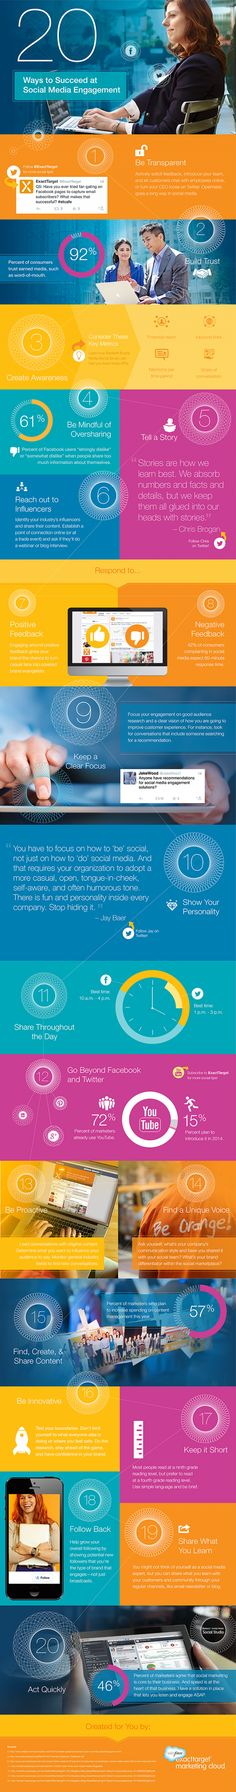 20 Ways to Succeed at #SocialMedia Engagement - #Infographic #SMM